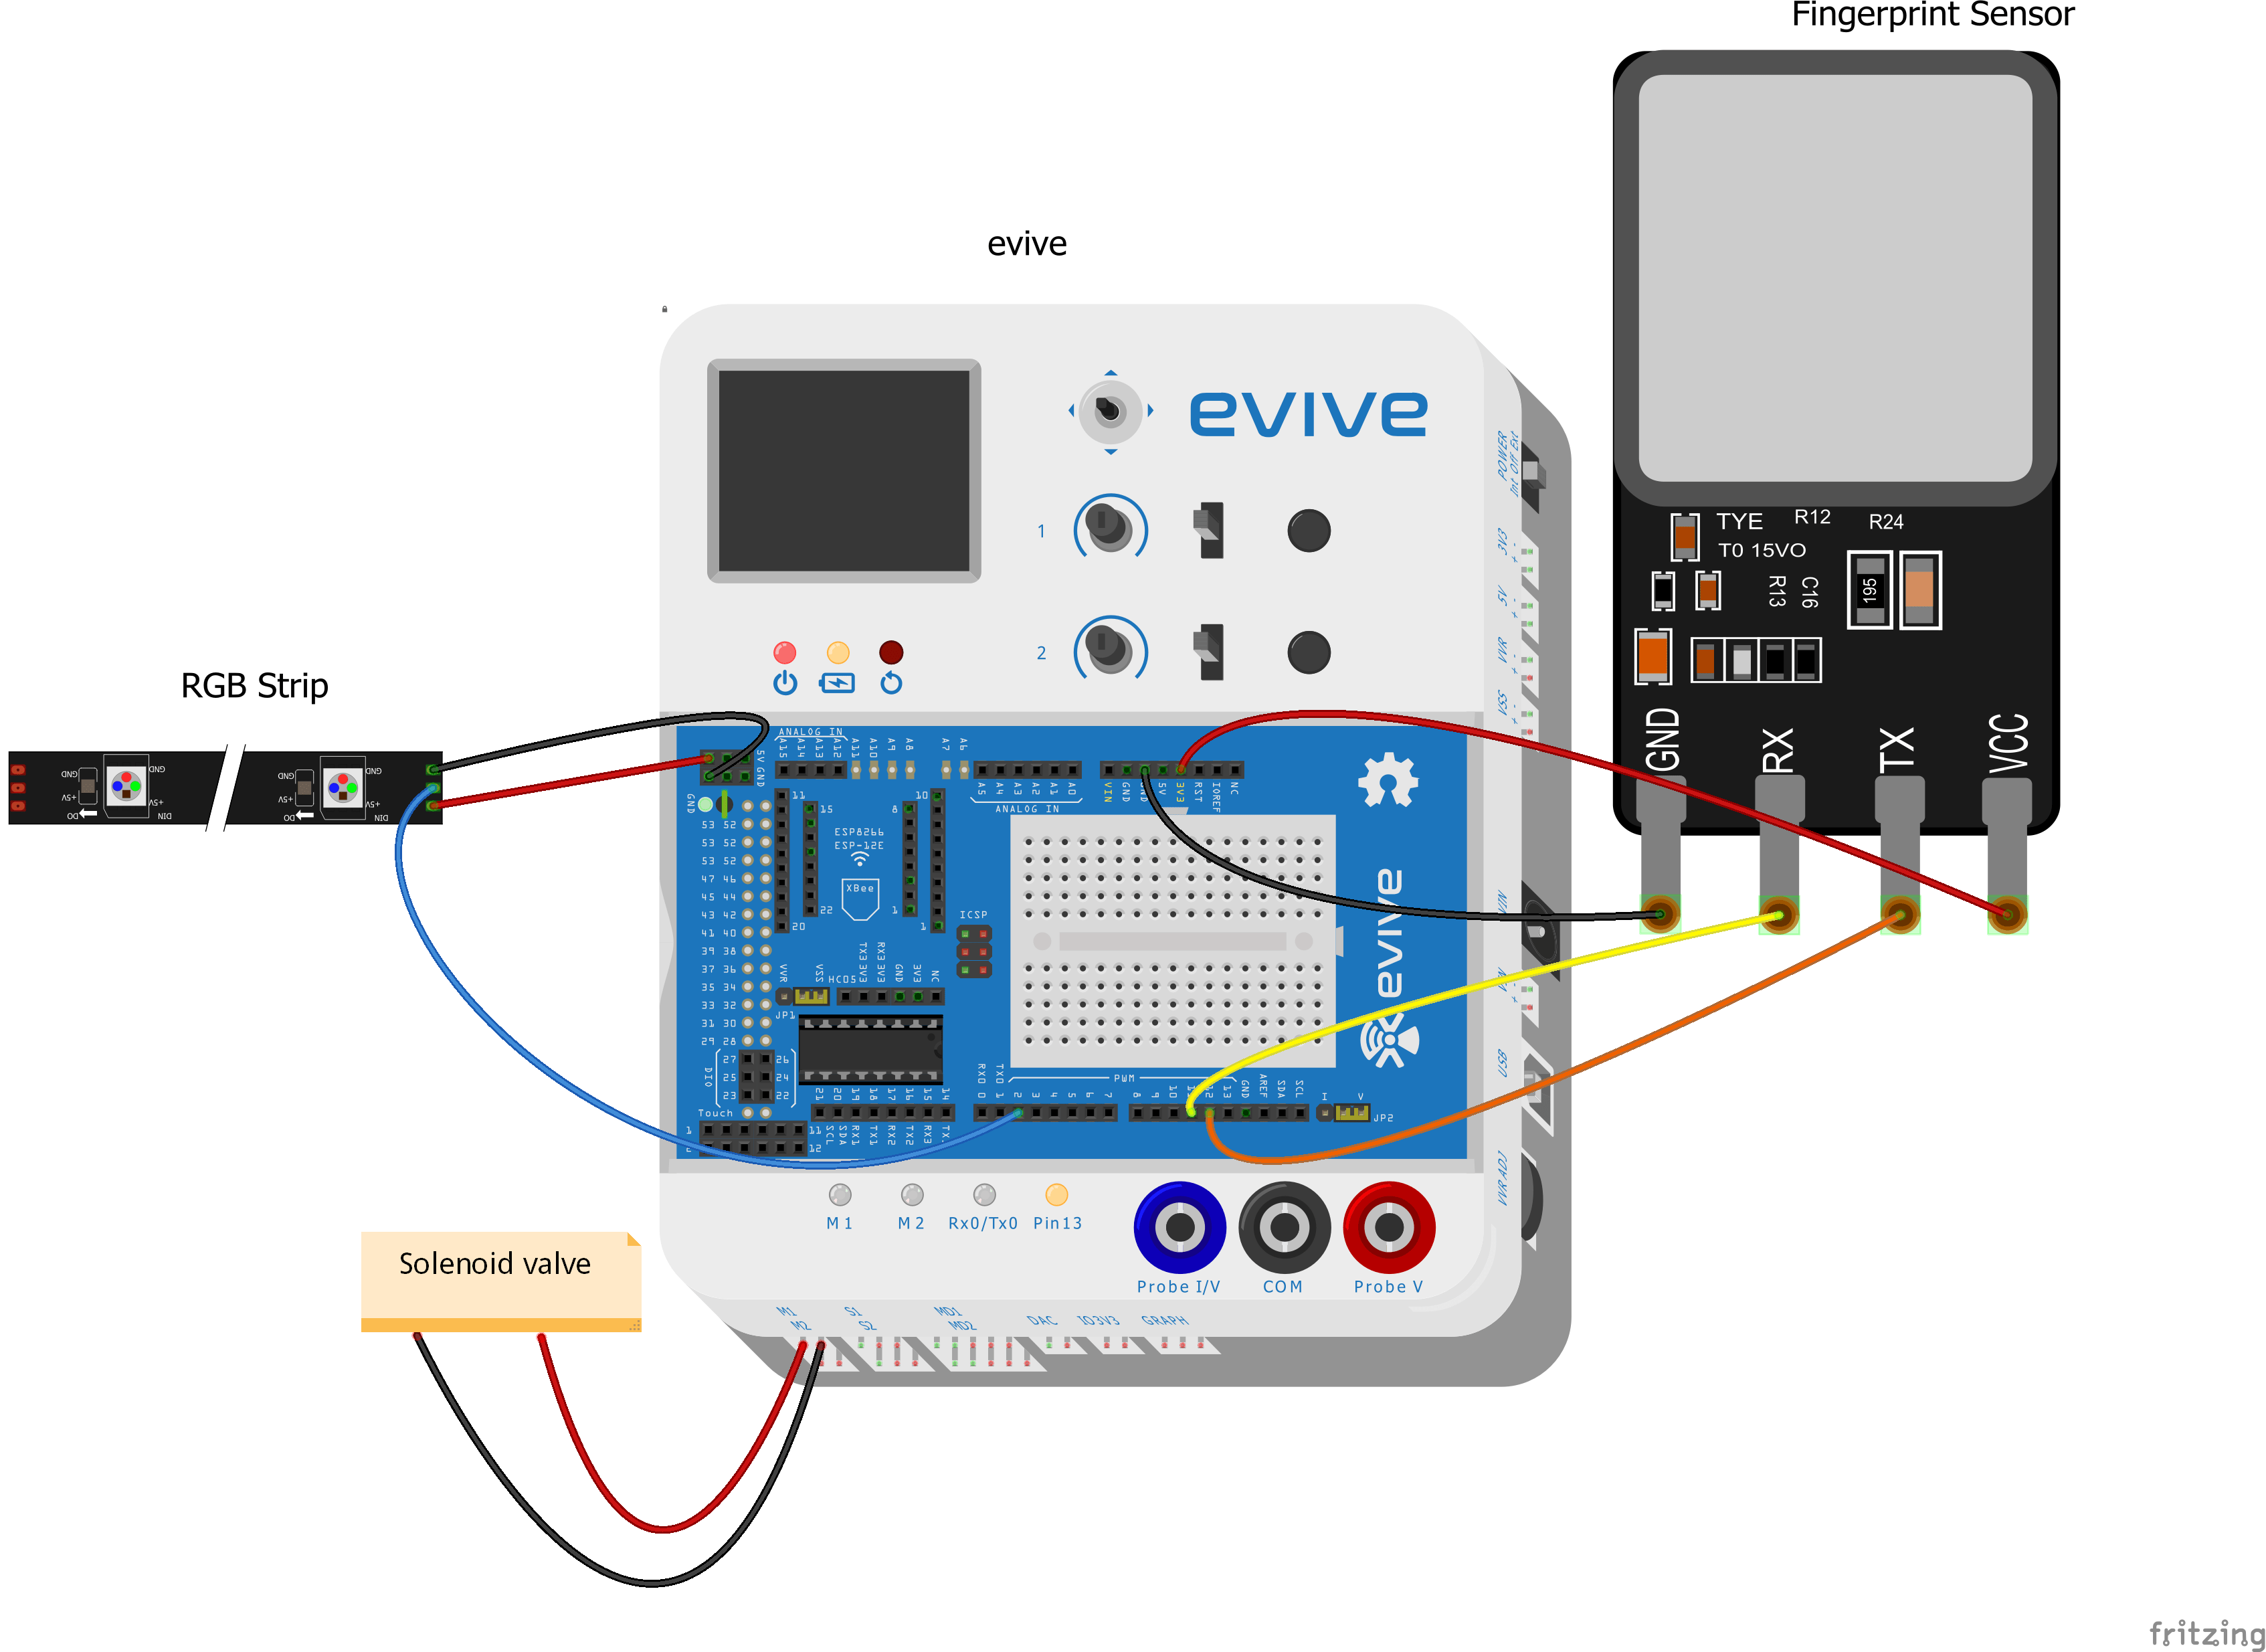 How To Make A Diy Fingerprint Locker Based On Aarduino At Home Electronic Gadgets Circuit Diagram